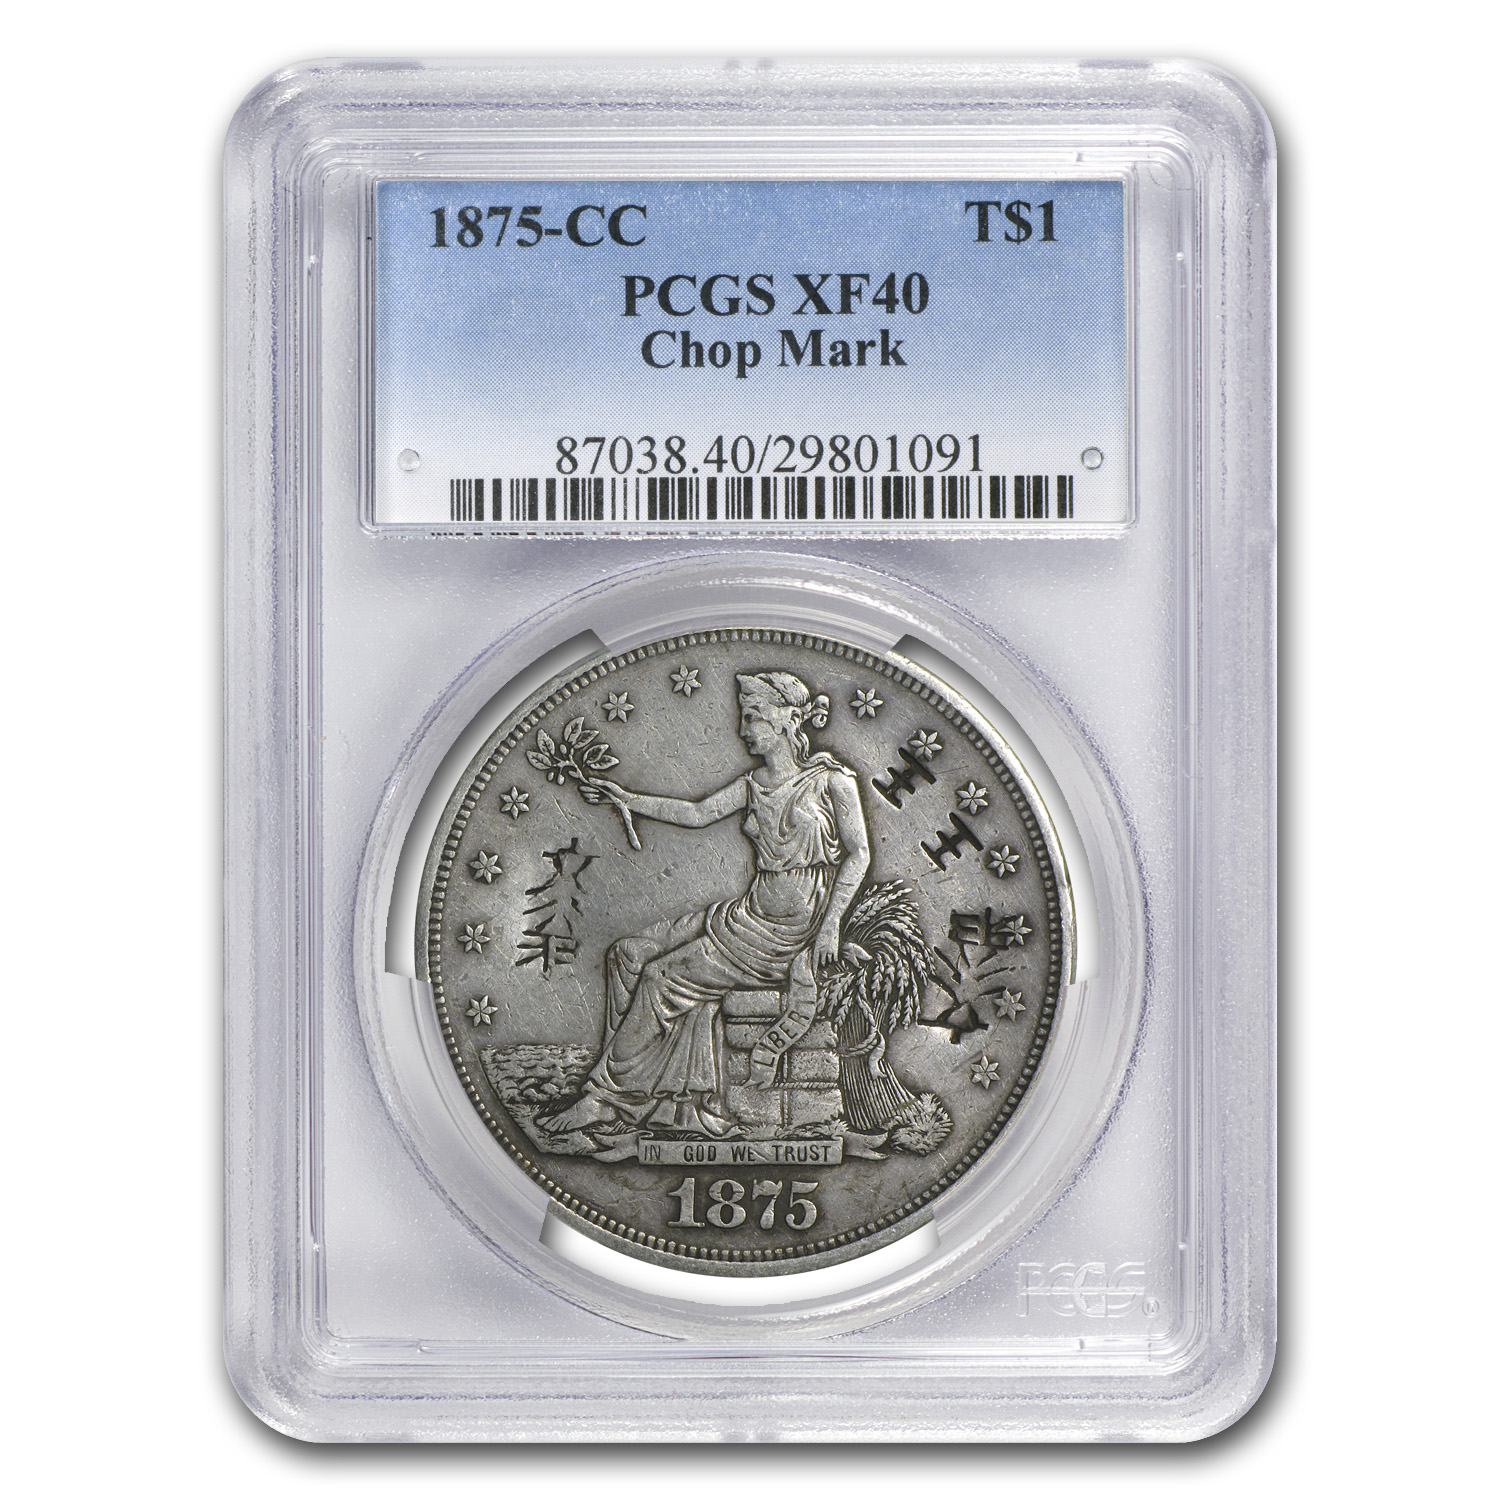 1875-CC Trade Dollar XF-40 PCGS (Chopmark)